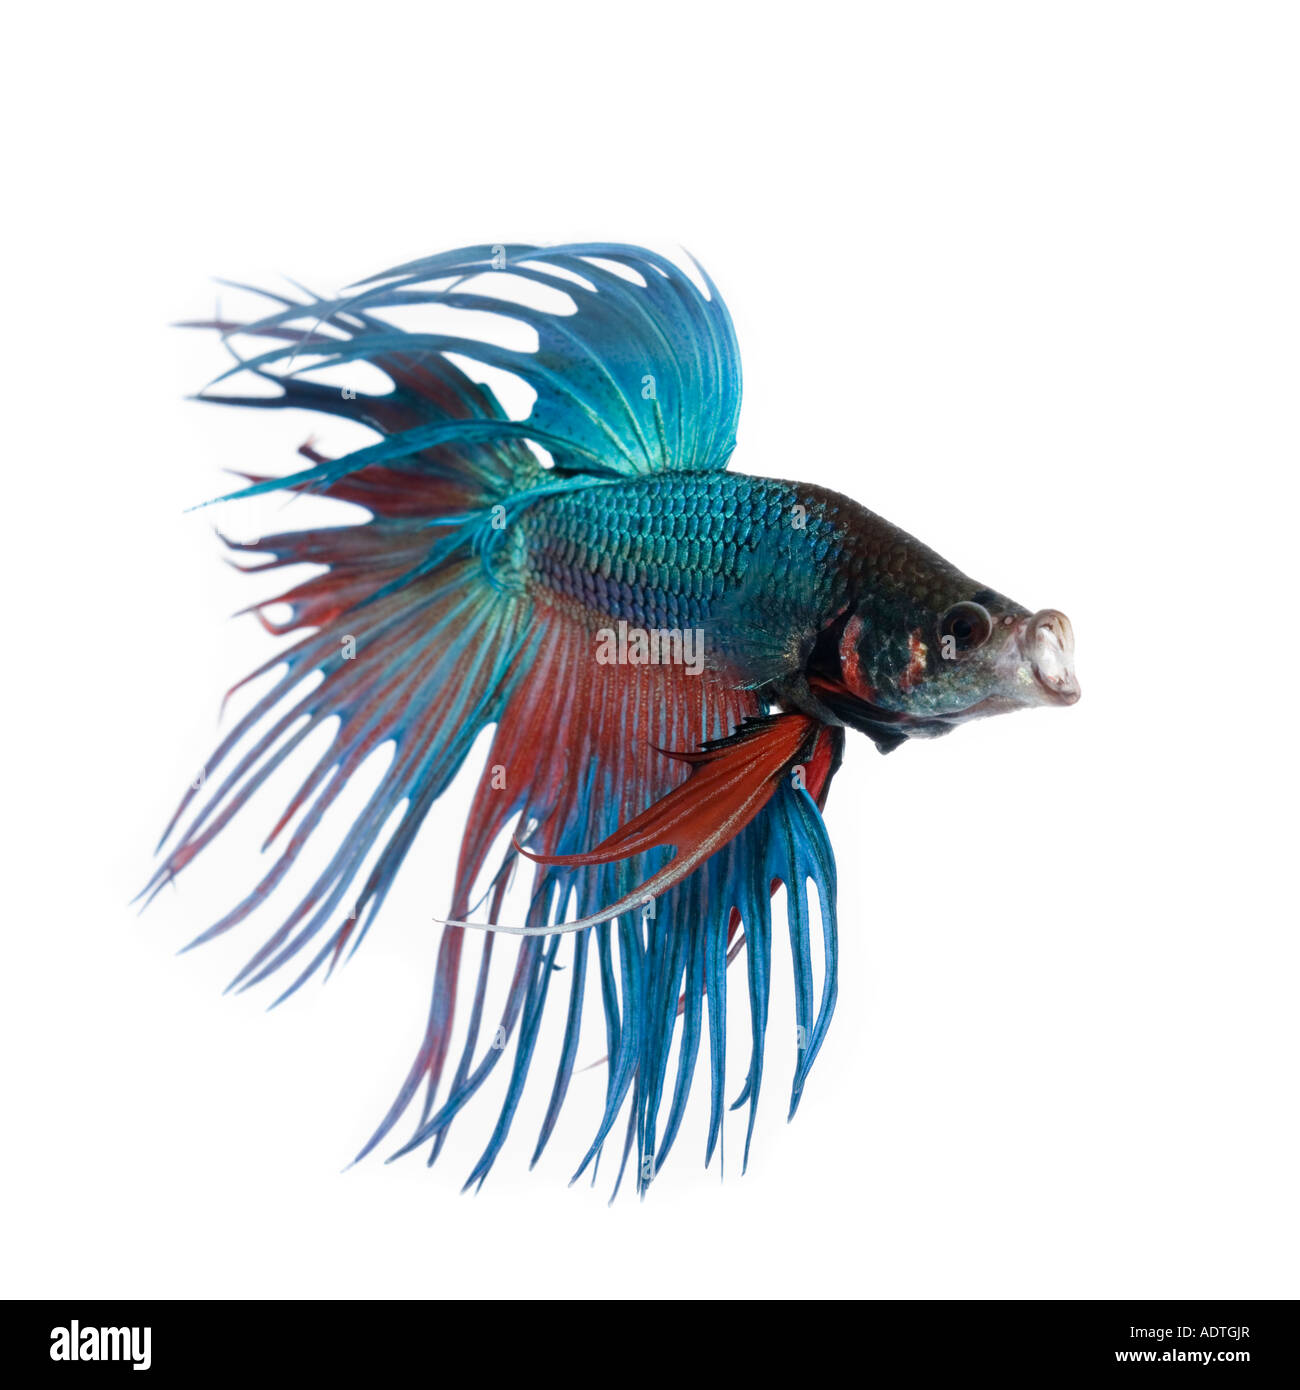 Turquoise and red crown betta fish displaying elaborate for Crown betta fish